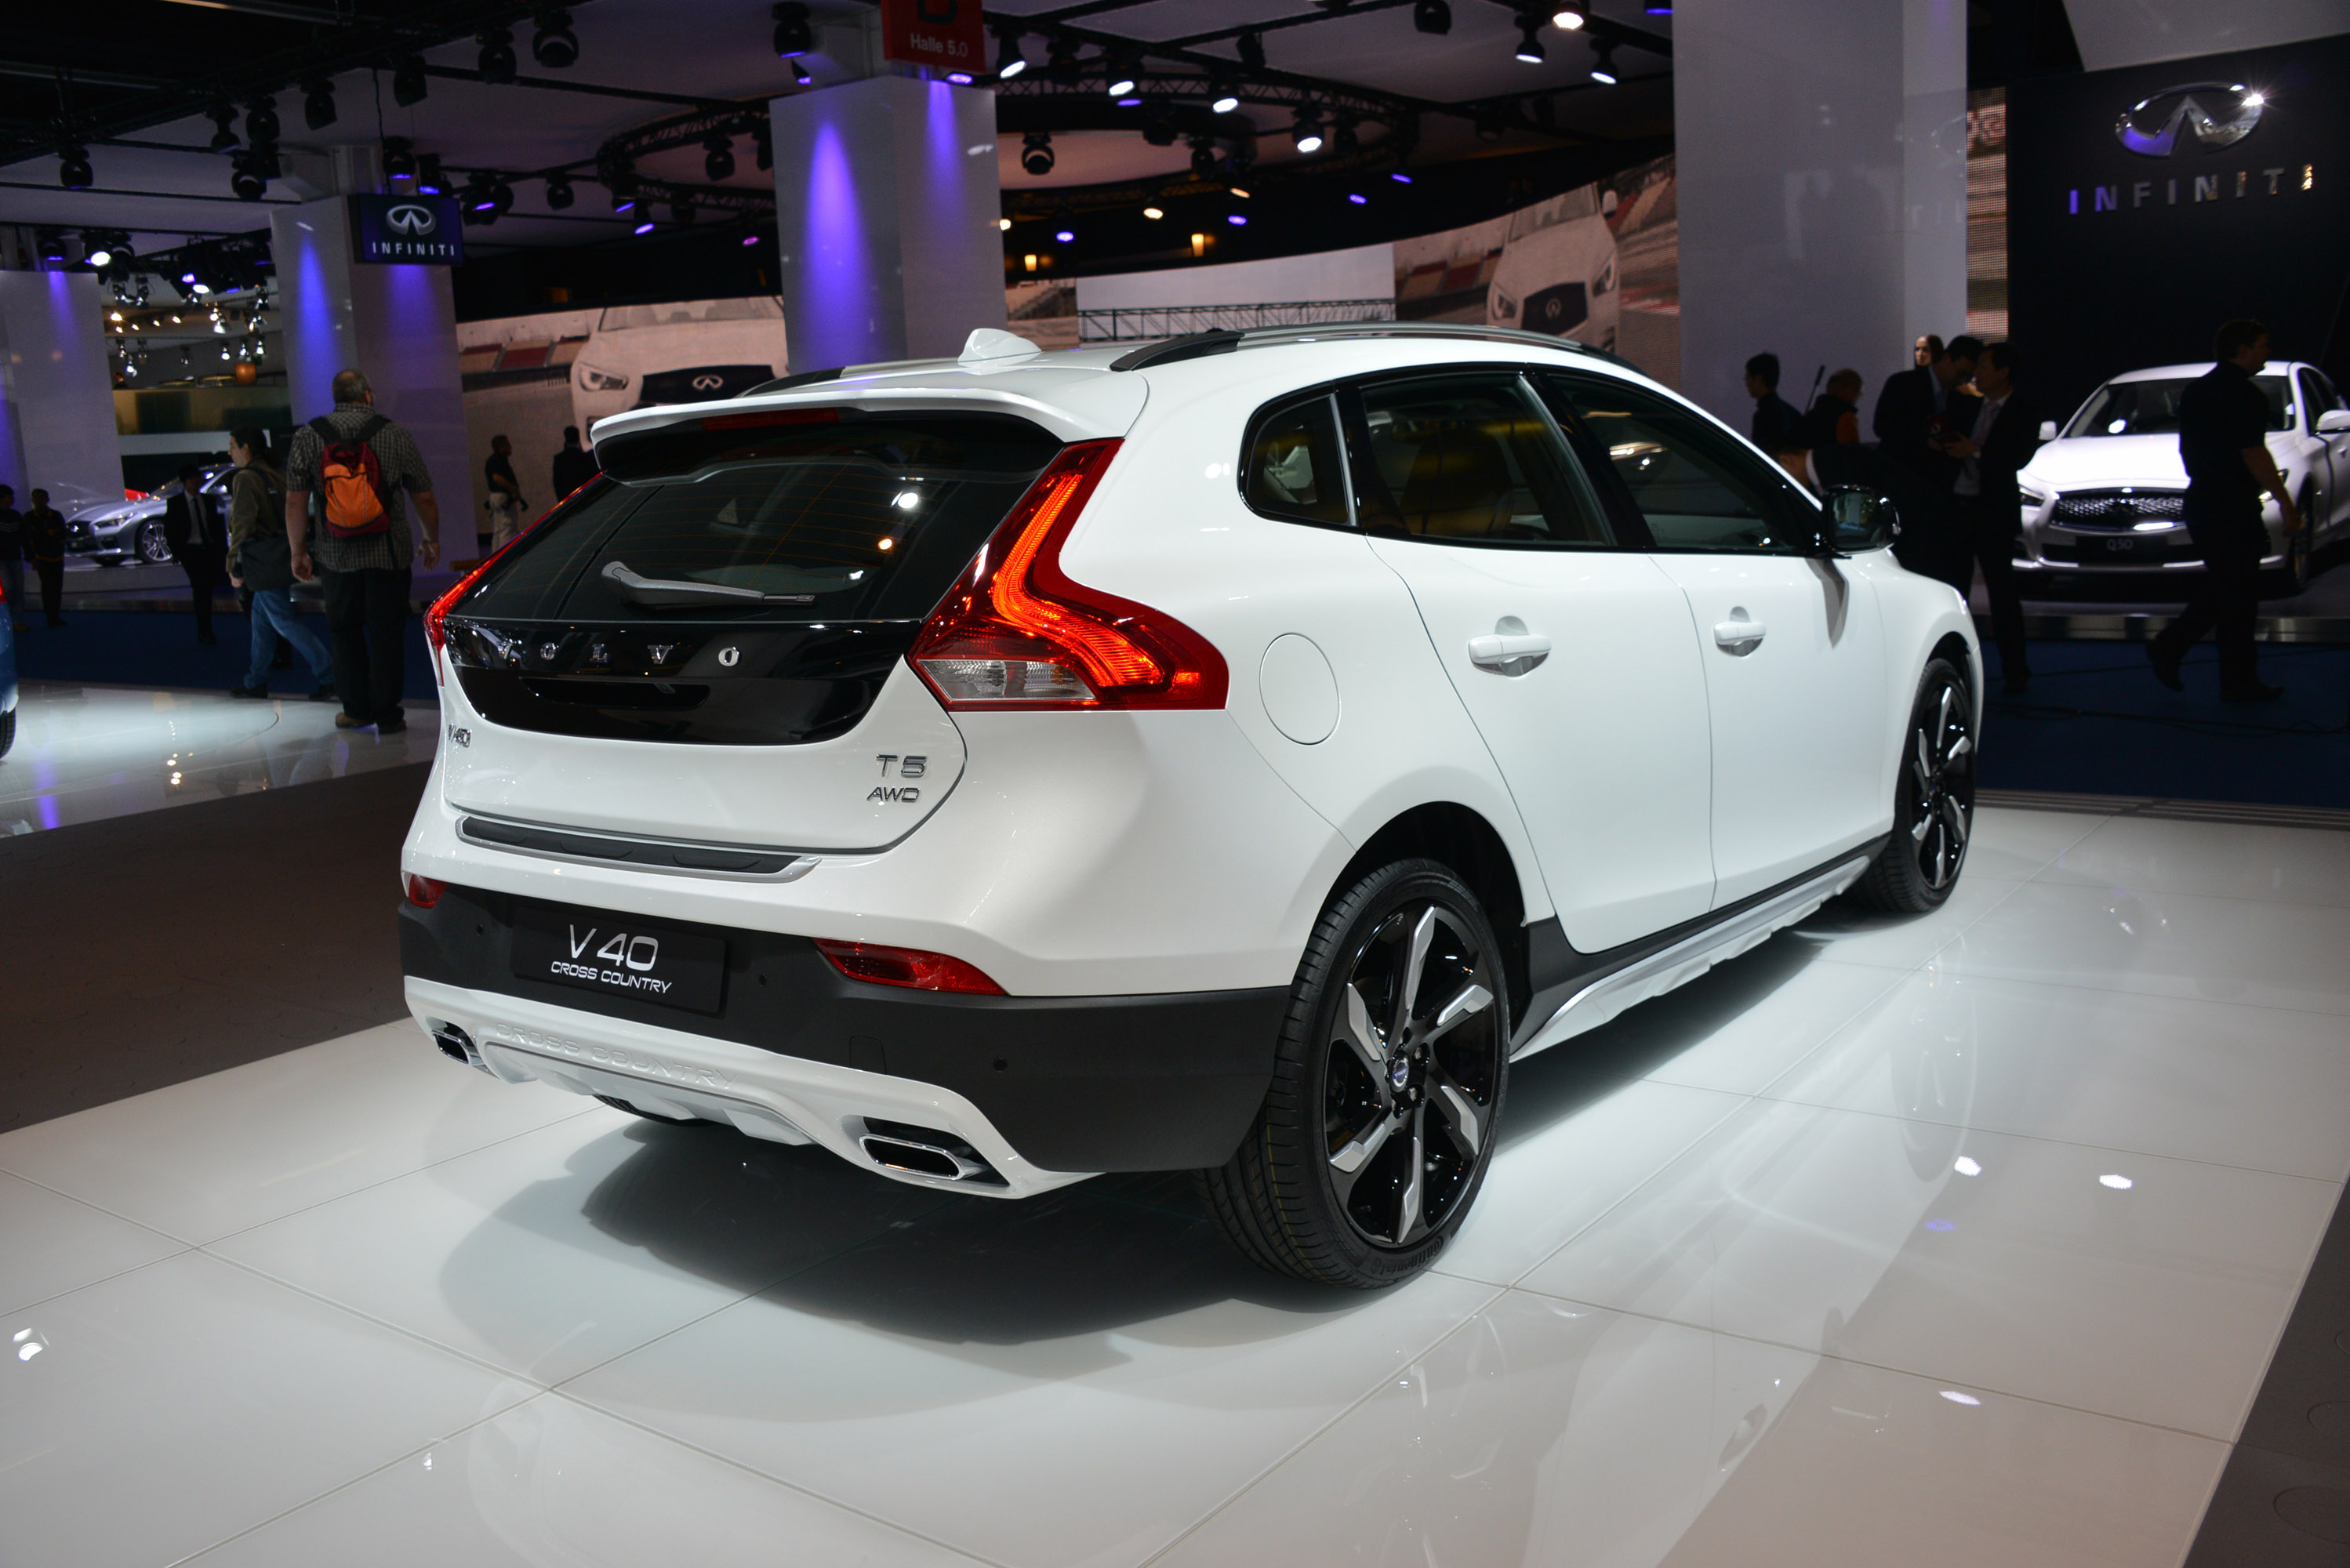 volvo announces engines included in v60 sportswagon model. Black Bedroom Furniture Sets. Home Design Ideas